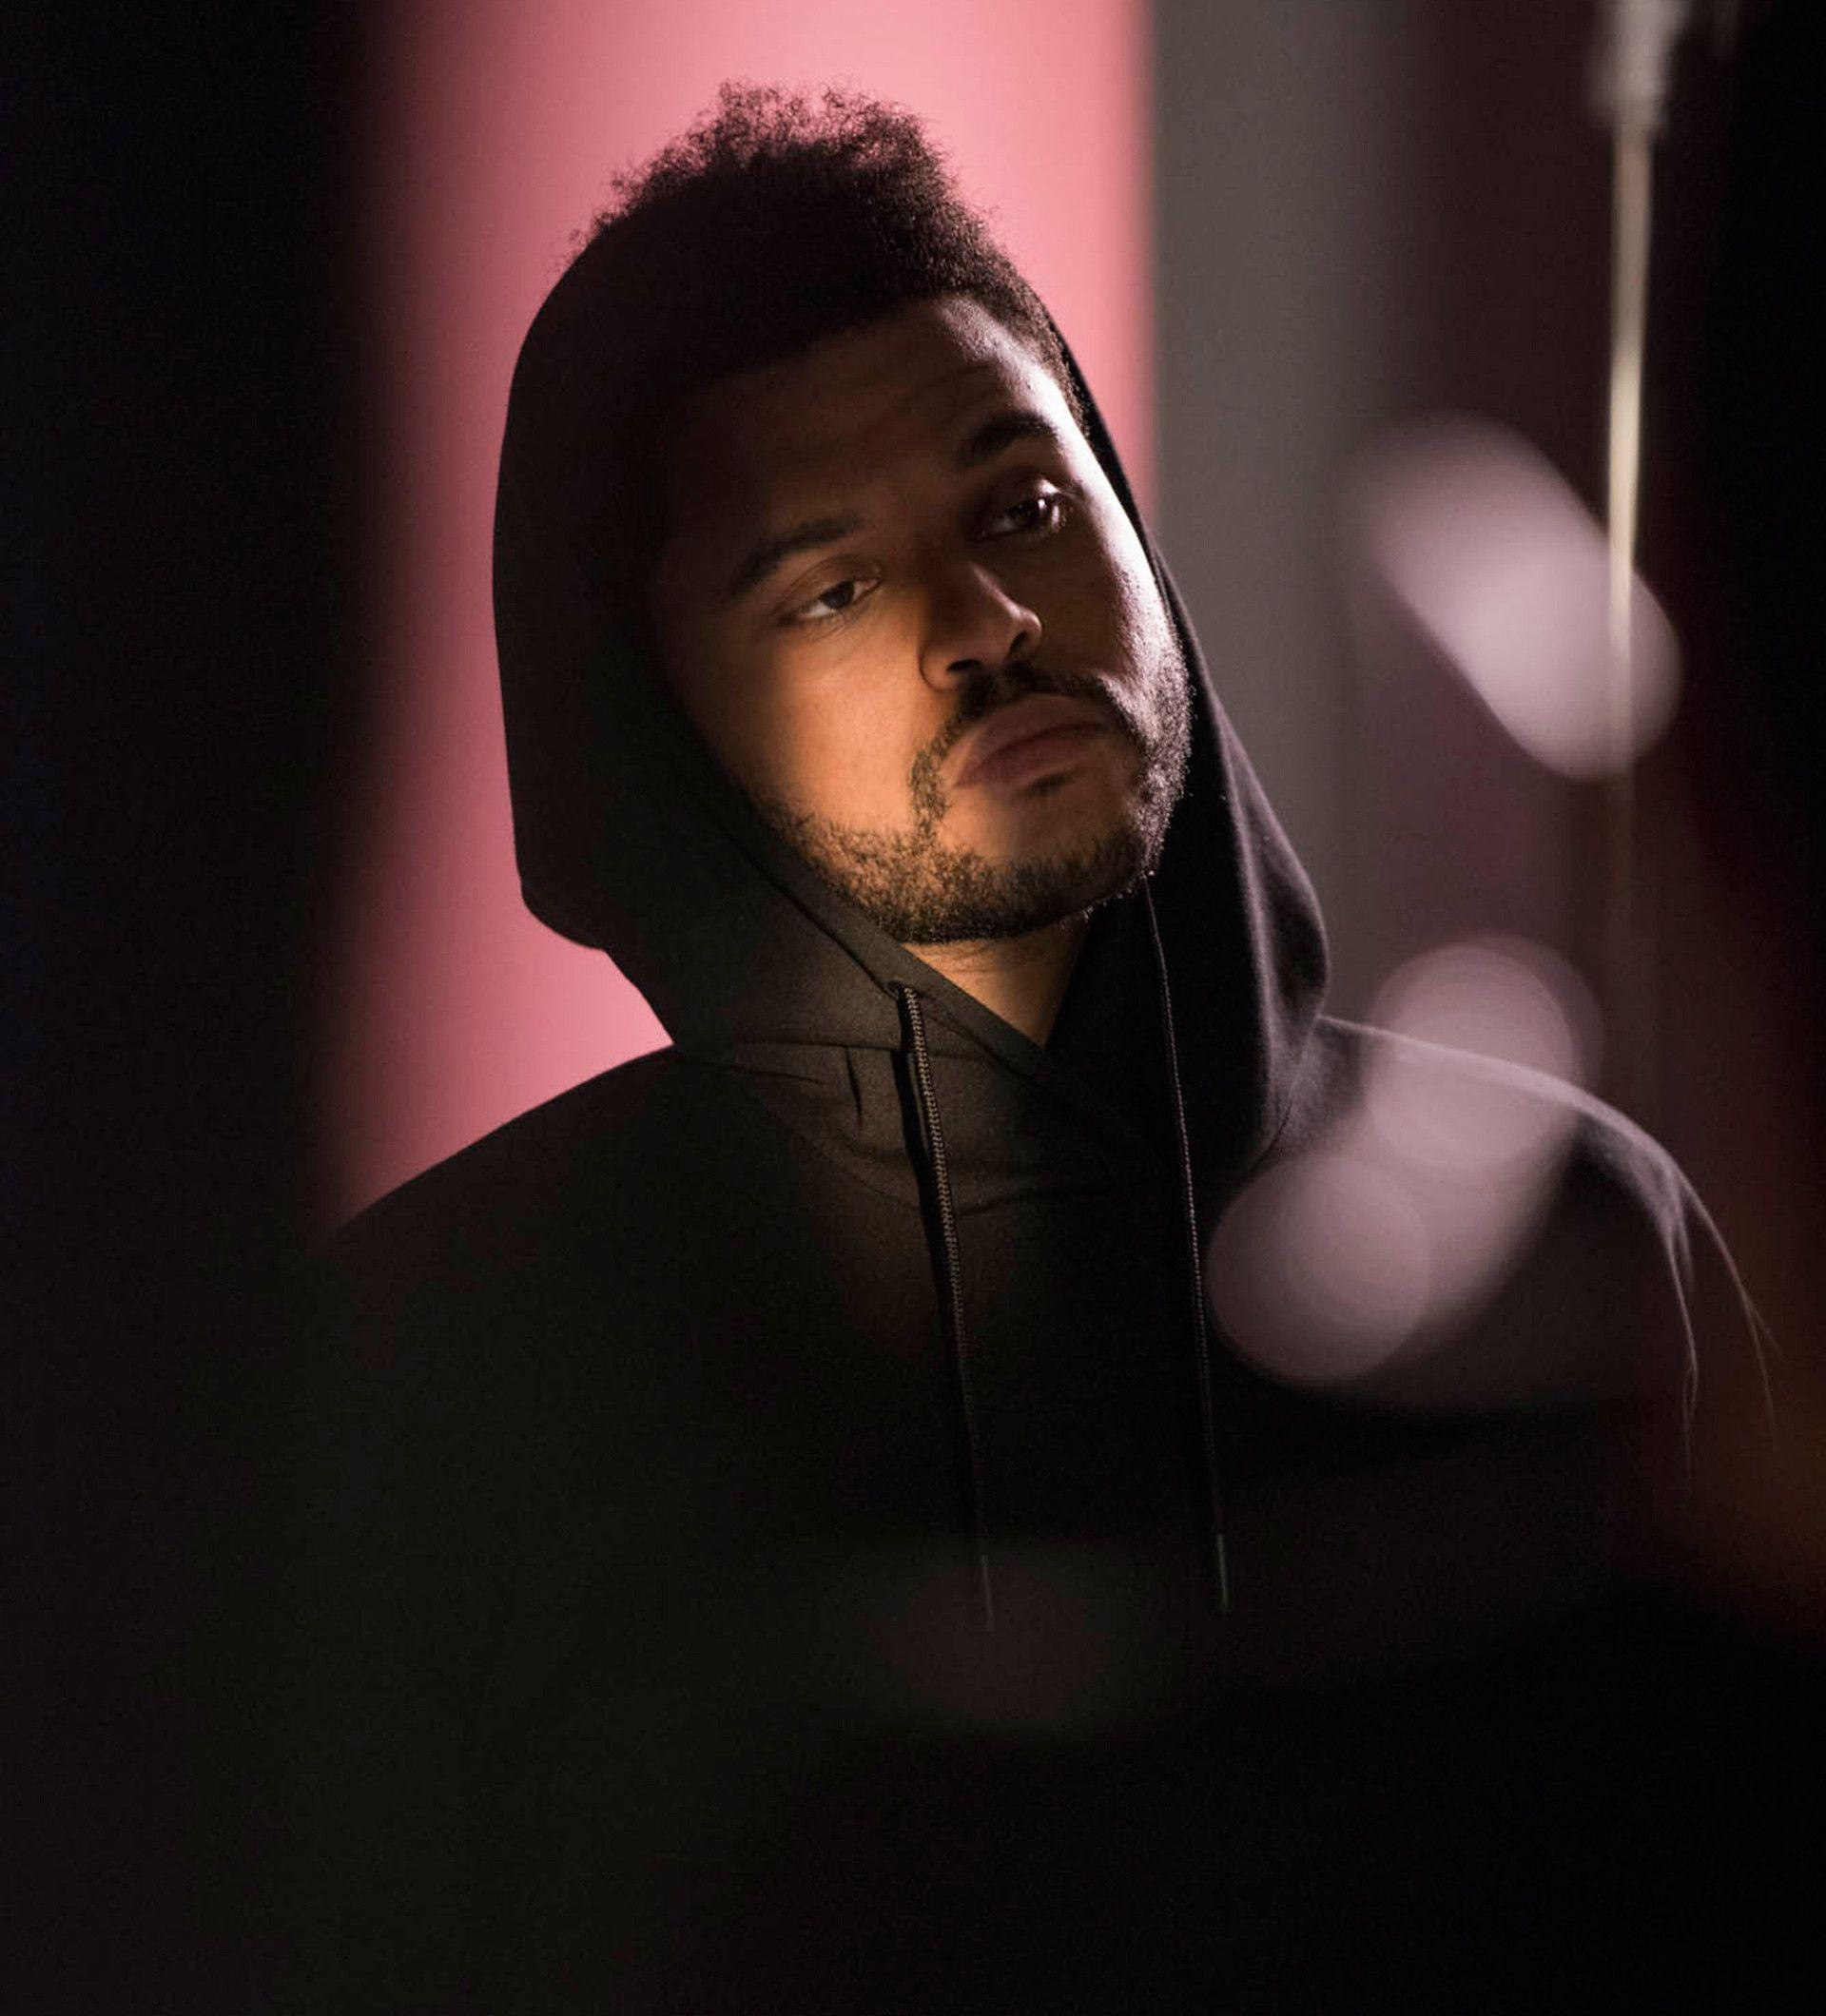 The Weeknd 2018 Wallpapers Wallpaper Cave